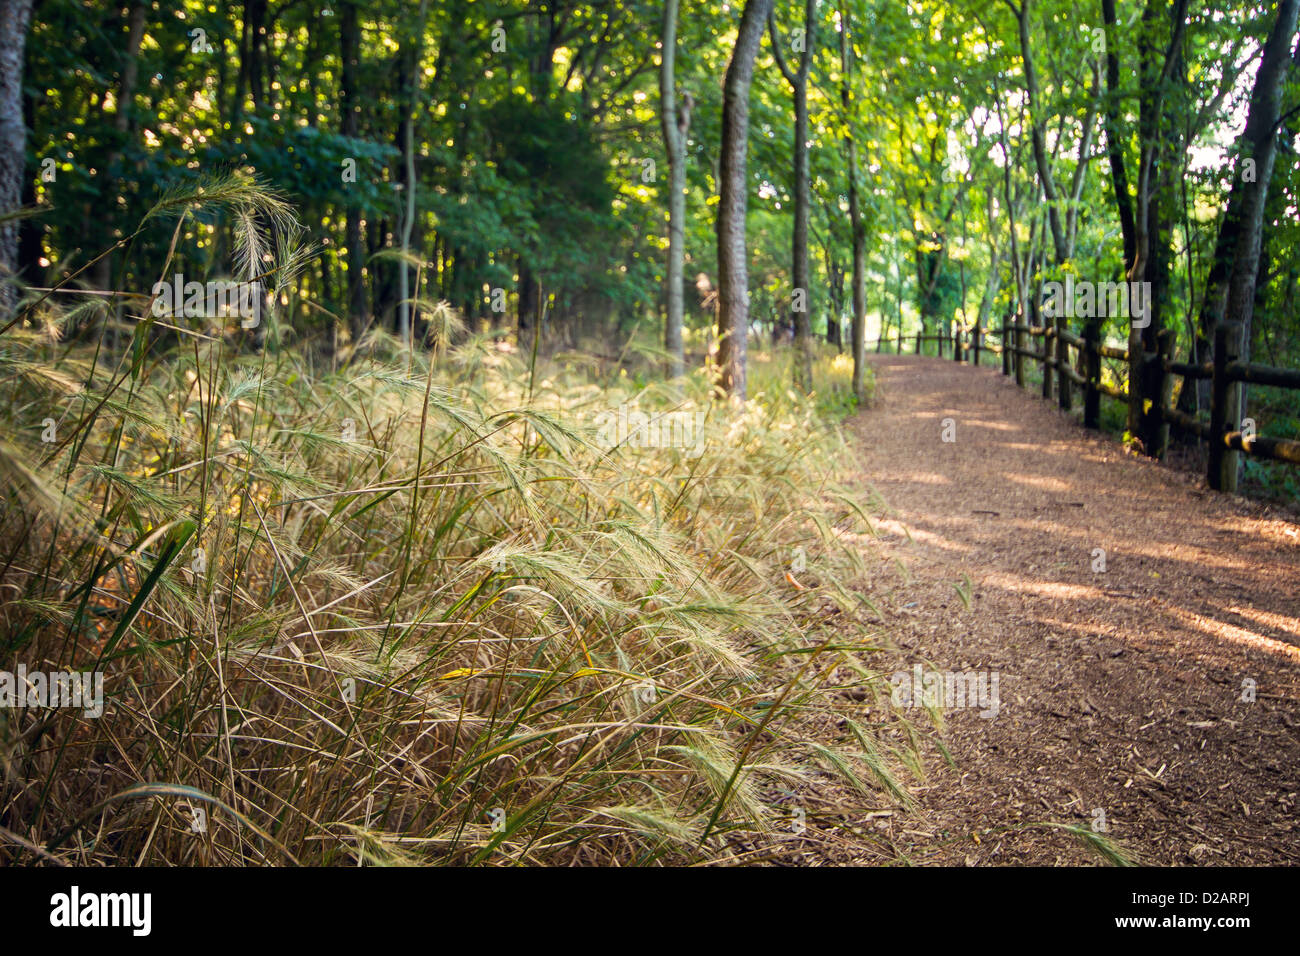 A hiking path heads off into the woods - Stock Image